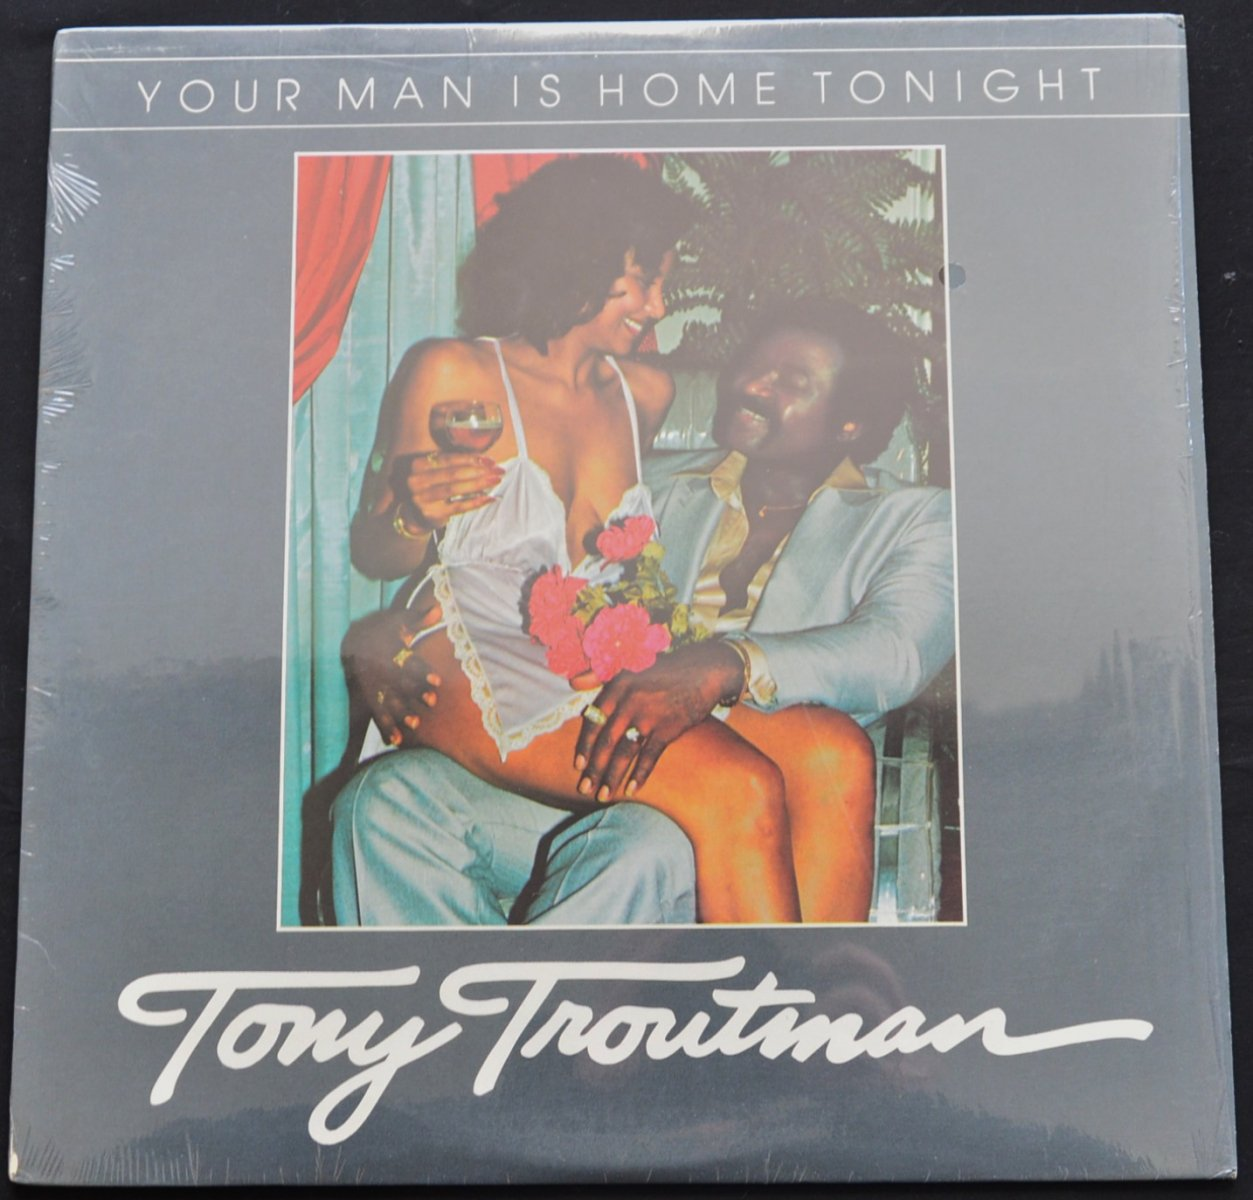 TONY TROUTMAN ‎/ YOUR MAN IS HOME TONIGHT (LP)